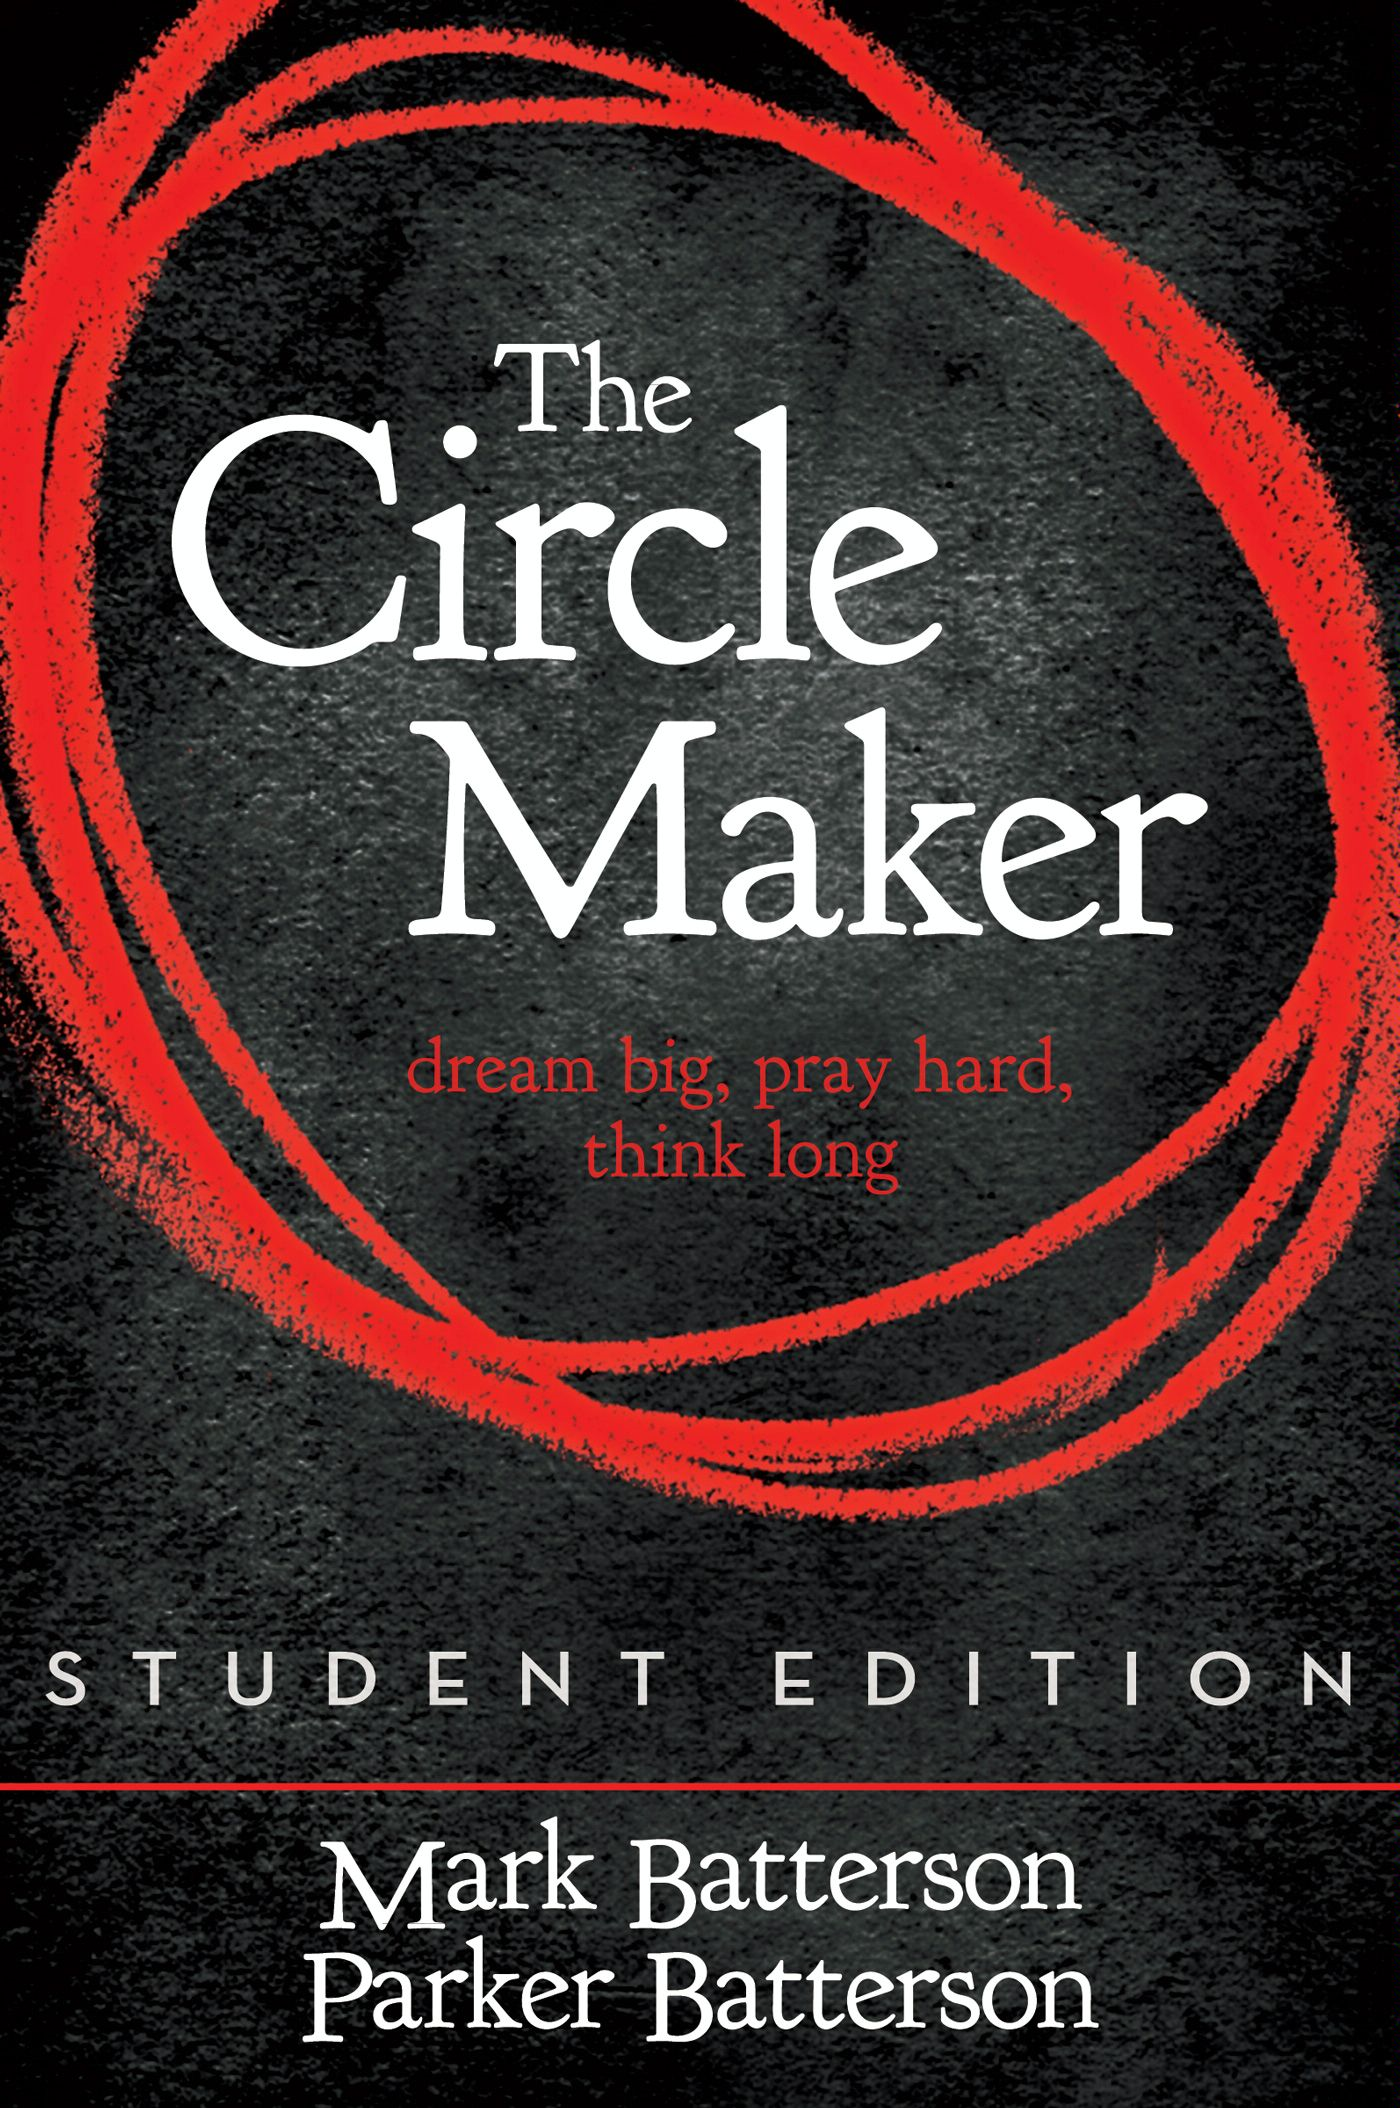 The Circle Maker, Student Edition